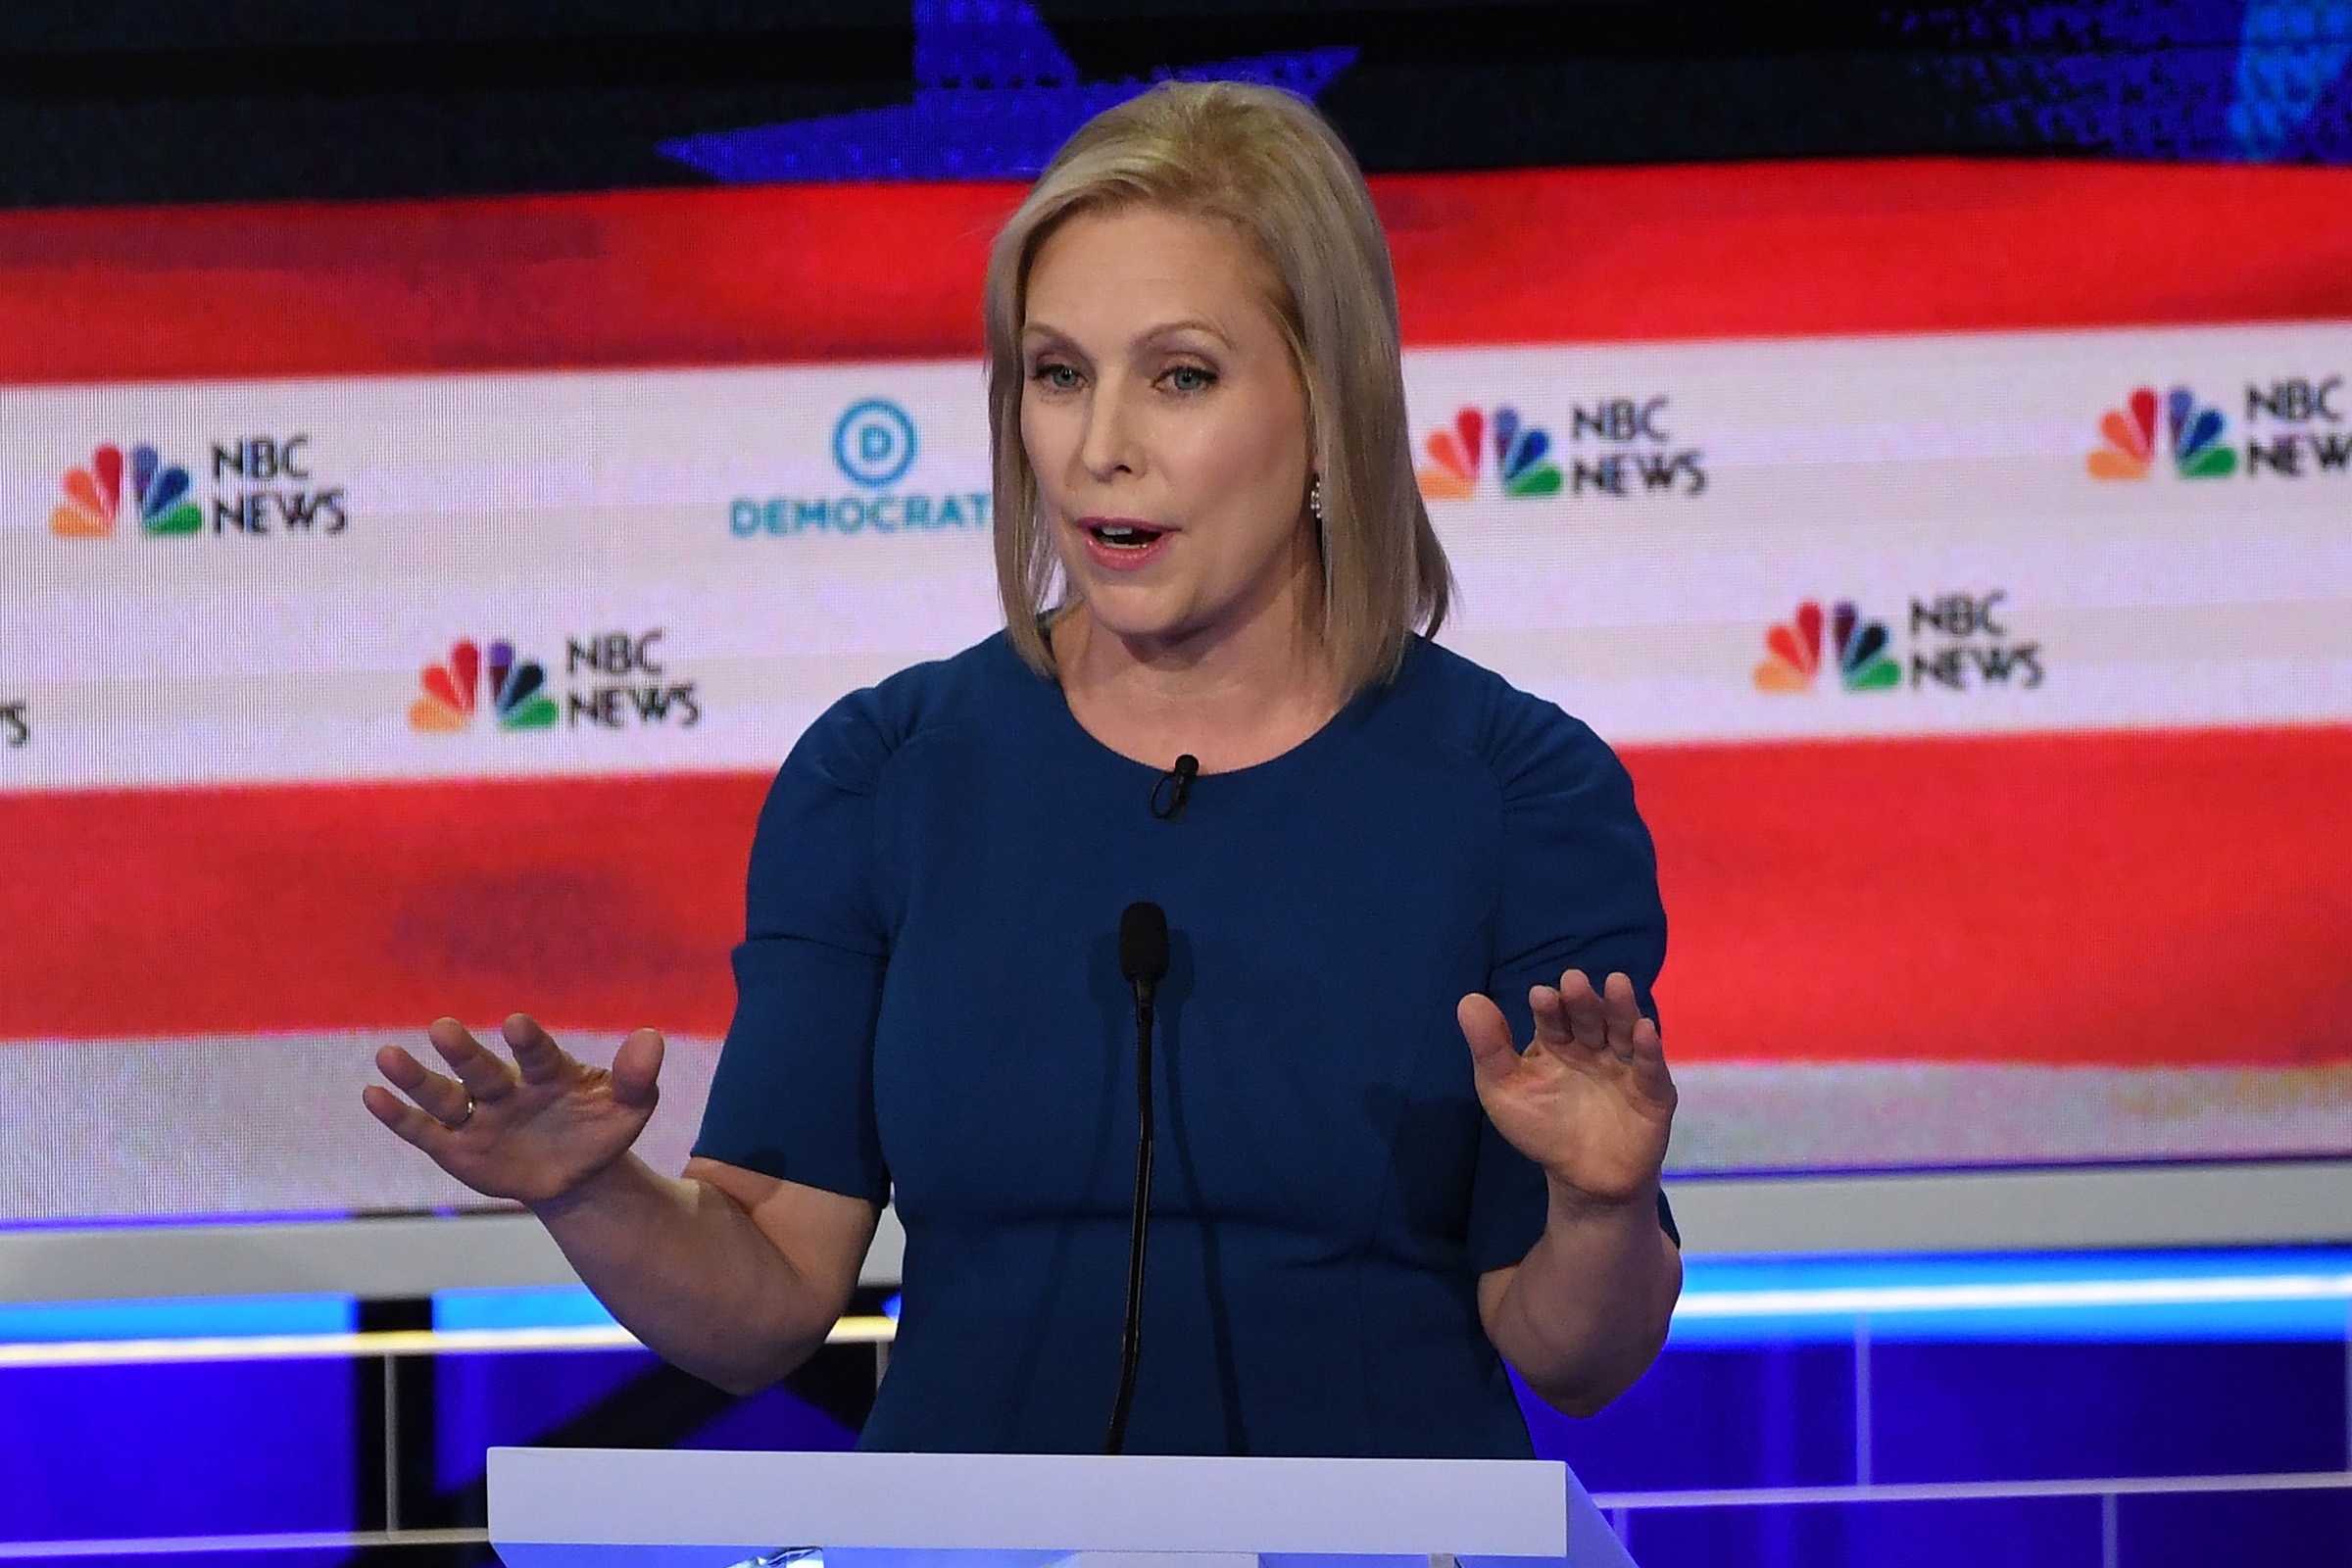 Democratic presidential hopeful US Senator for New York Kirsten Gillibrand speaks during the second Democratic primary debate of the 2020 presidential campaign season hosted by NBC News at the Adrienne Arsht Center for the Performing Arts in Miami, Florida, June 27, 2019.